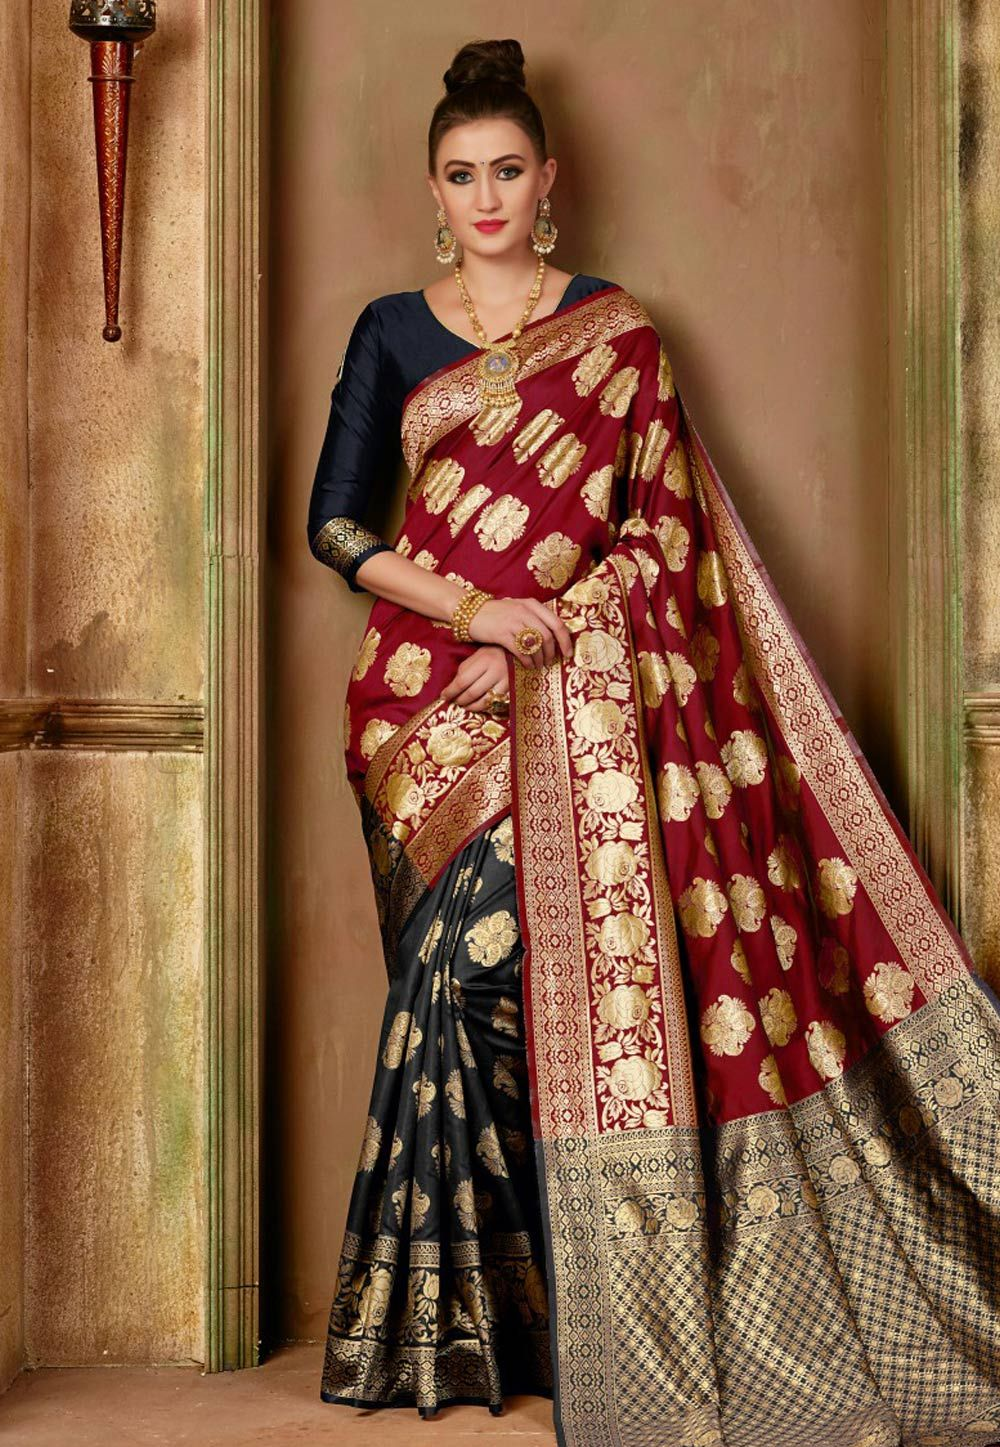 c8de9d10e16 Buy Red Banarasi Silk Saree With Blouse 153730 with blouse online at lowest  price from vast collection of sarees at Indianclothstore.com.